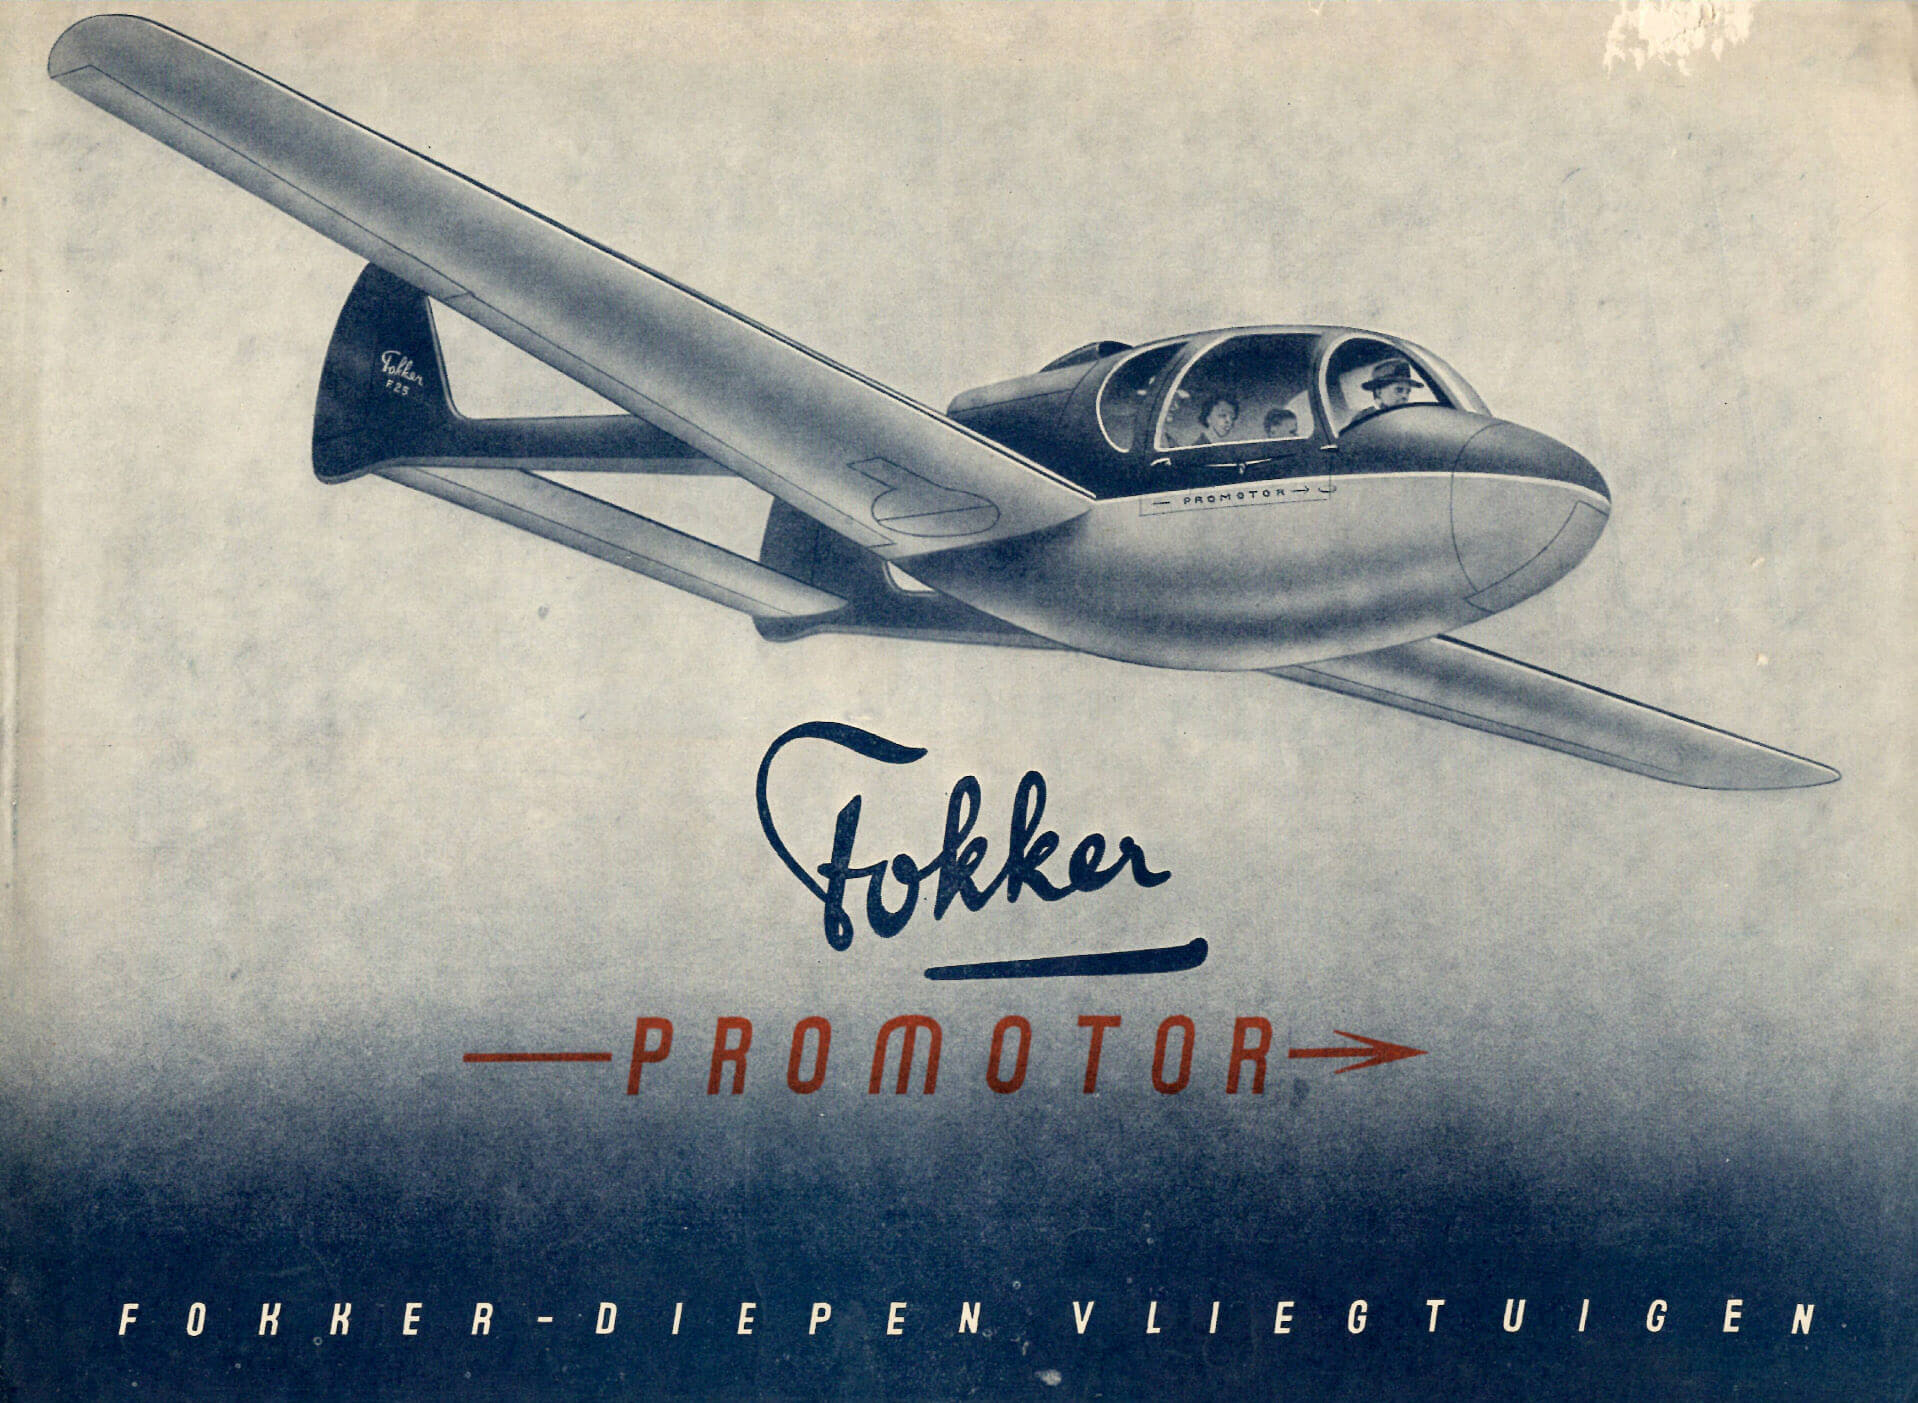 Flight Manual for the Fokker Promotor